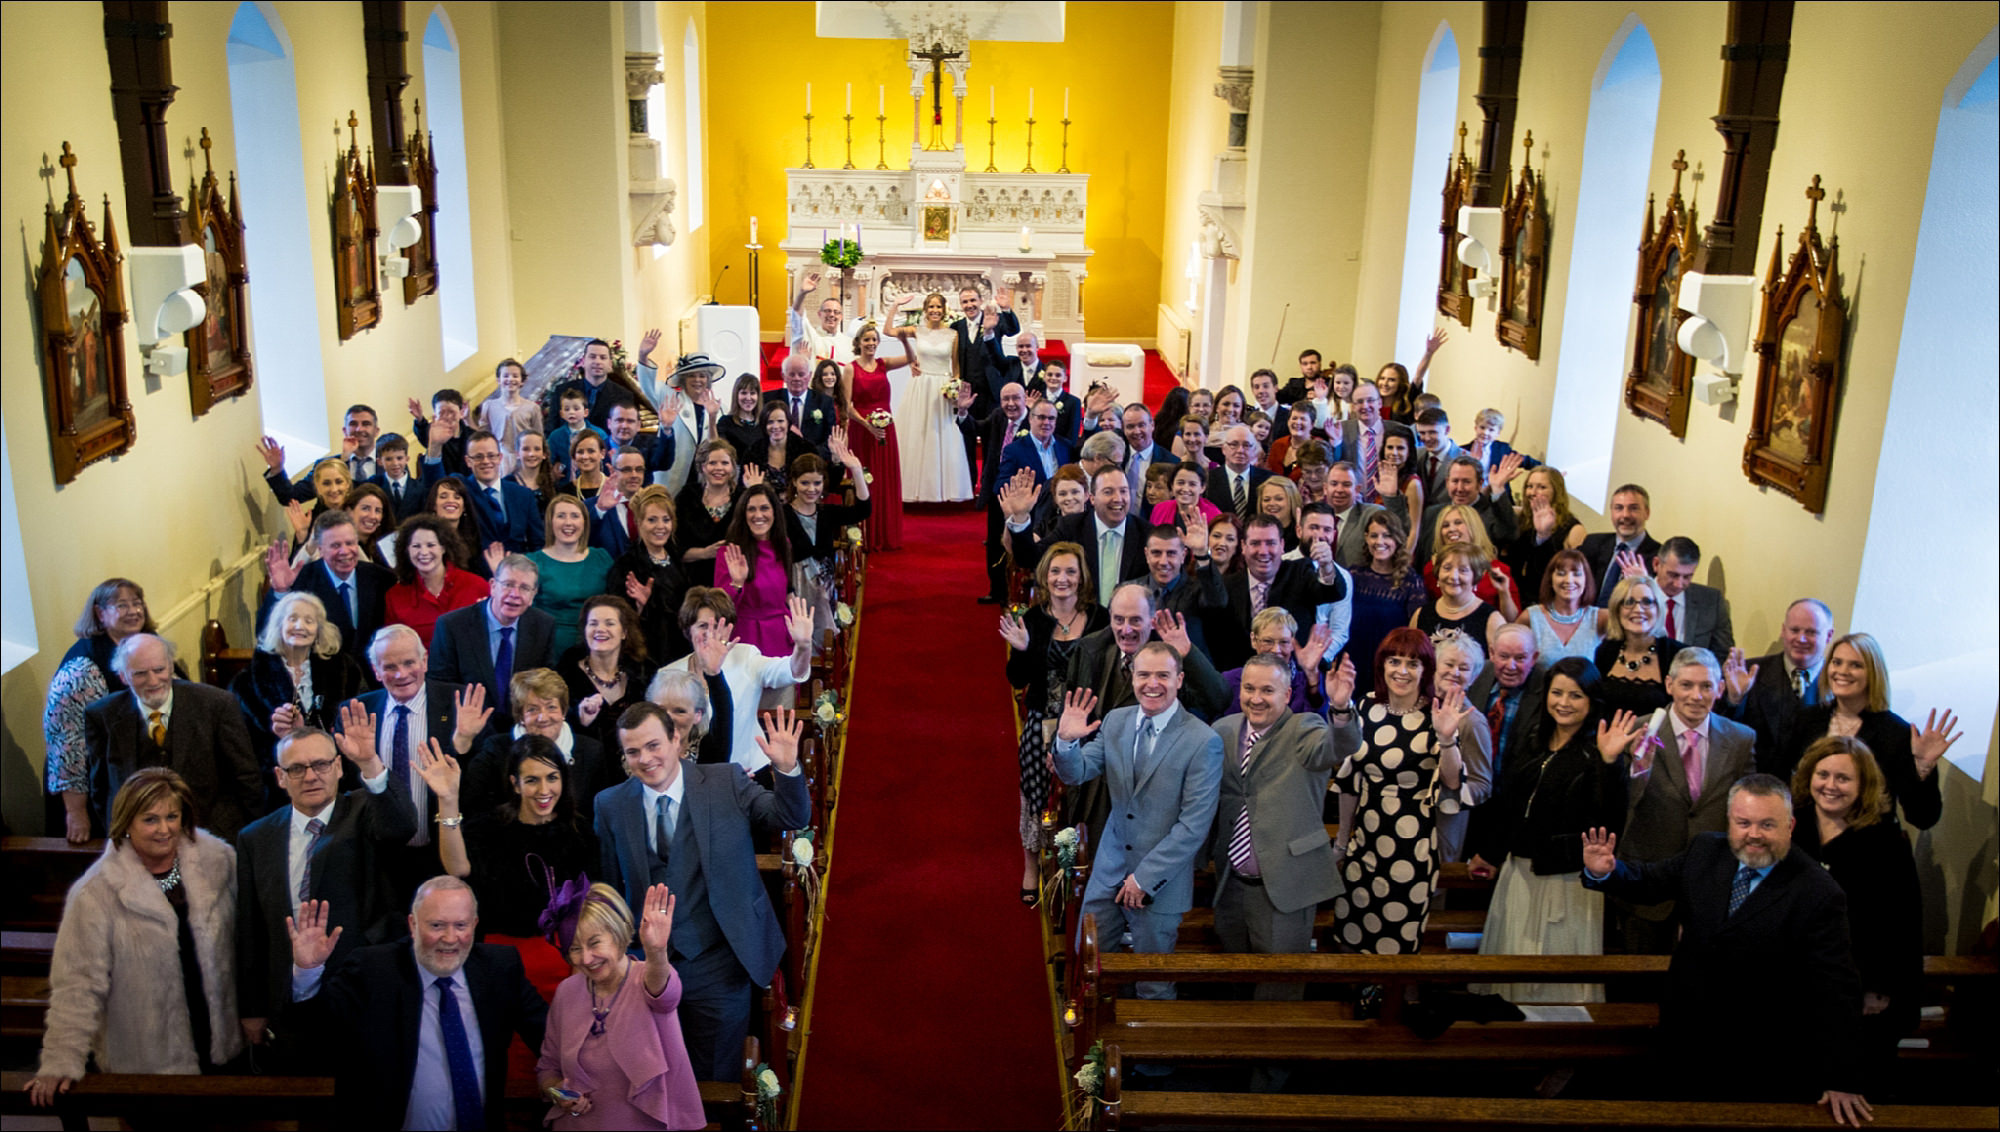 dublin wedding photographer david duignan photography tankardstown weddings slane rathfeigh church ireland 0027